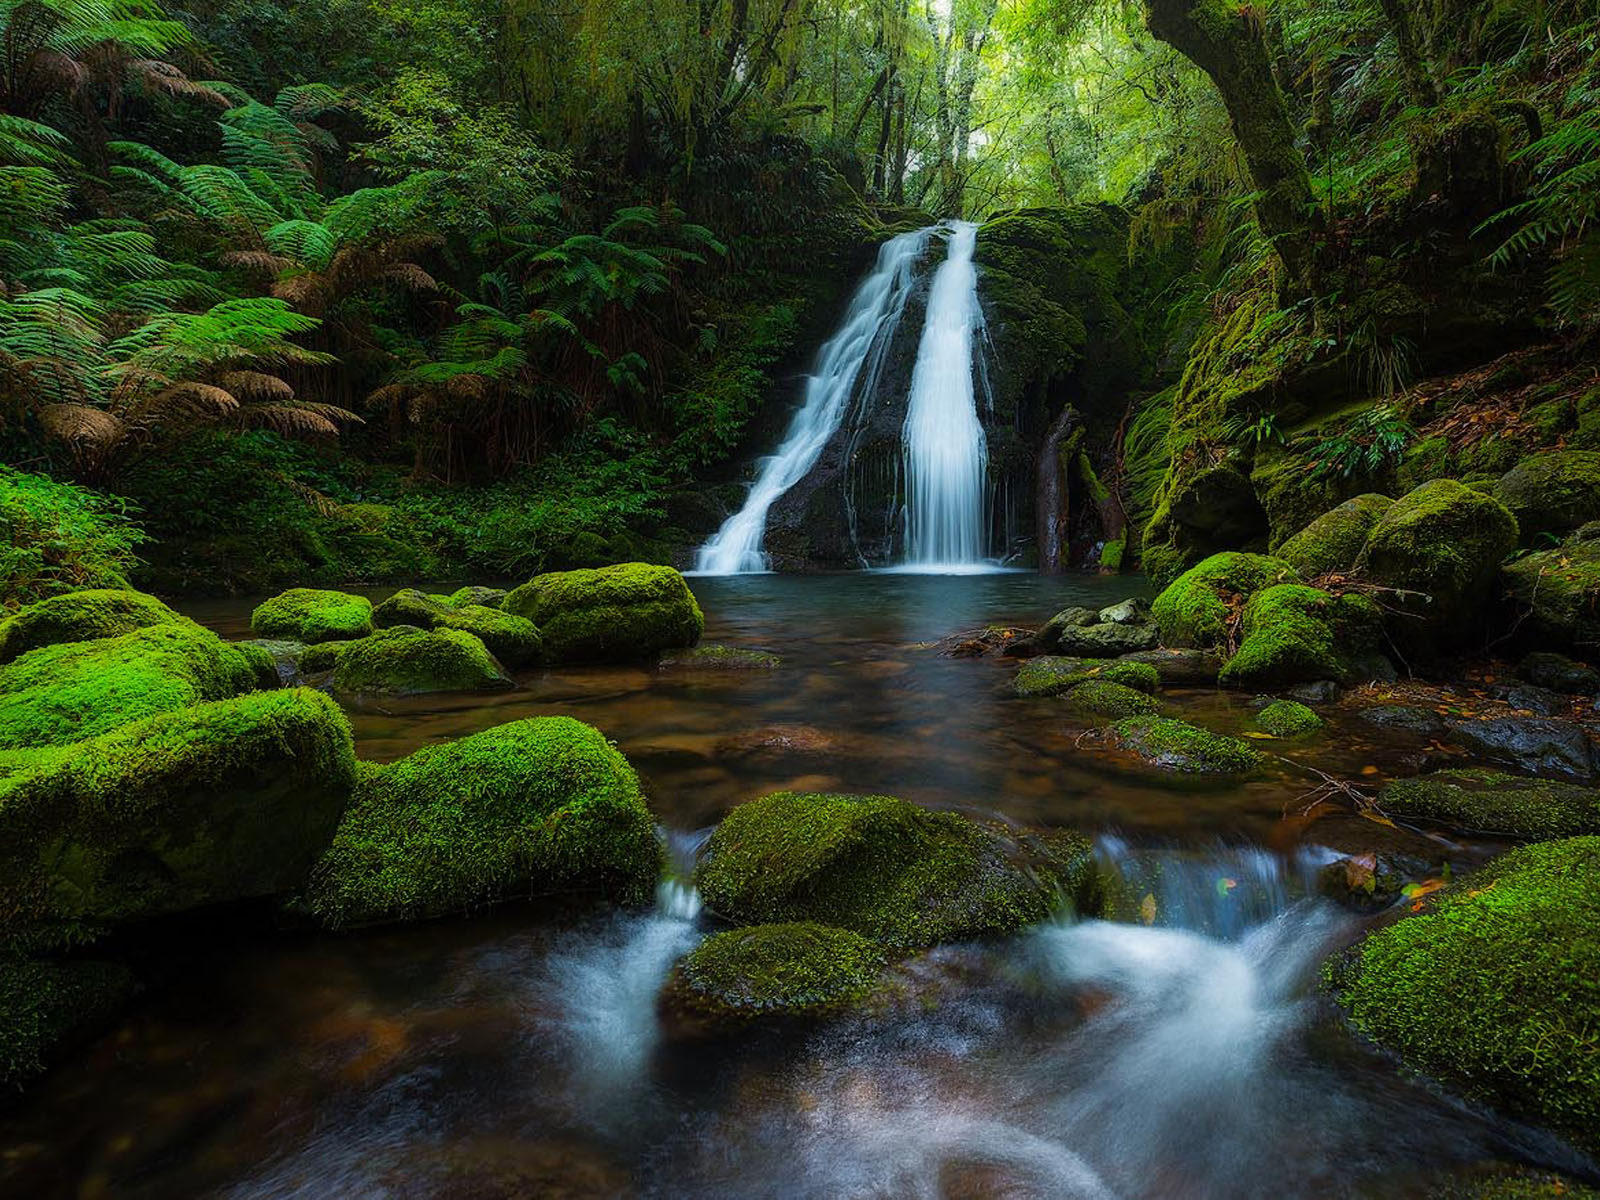 Free Hd Fall Wallpaper New England National Park Australia Rainforest Waterfall